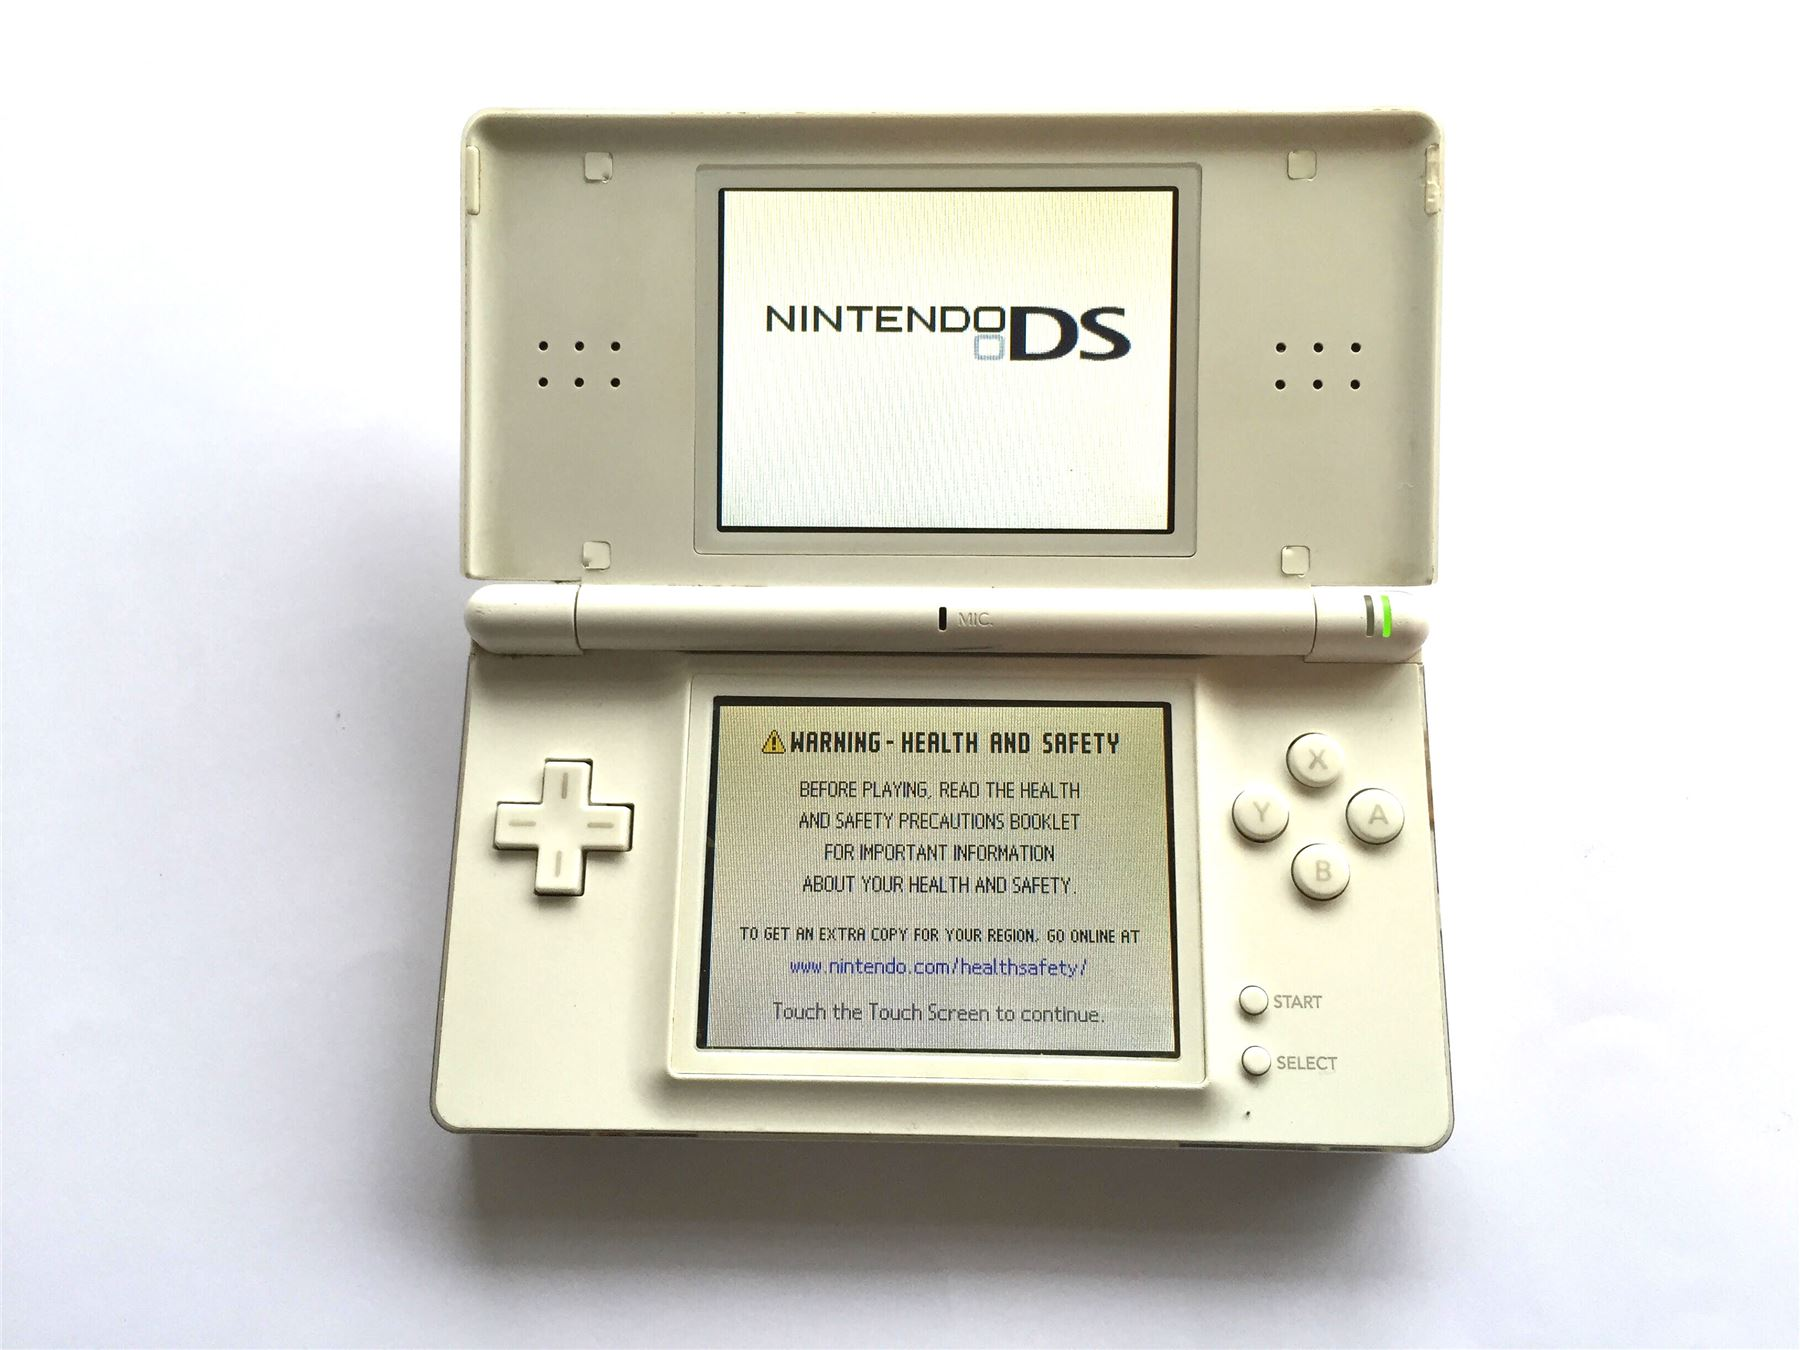 Nintendo-DS-Lite-Console-Handheld-Video-Game-System-NDSL-DS-NDS-DSL-8-Colours thumbnail 47